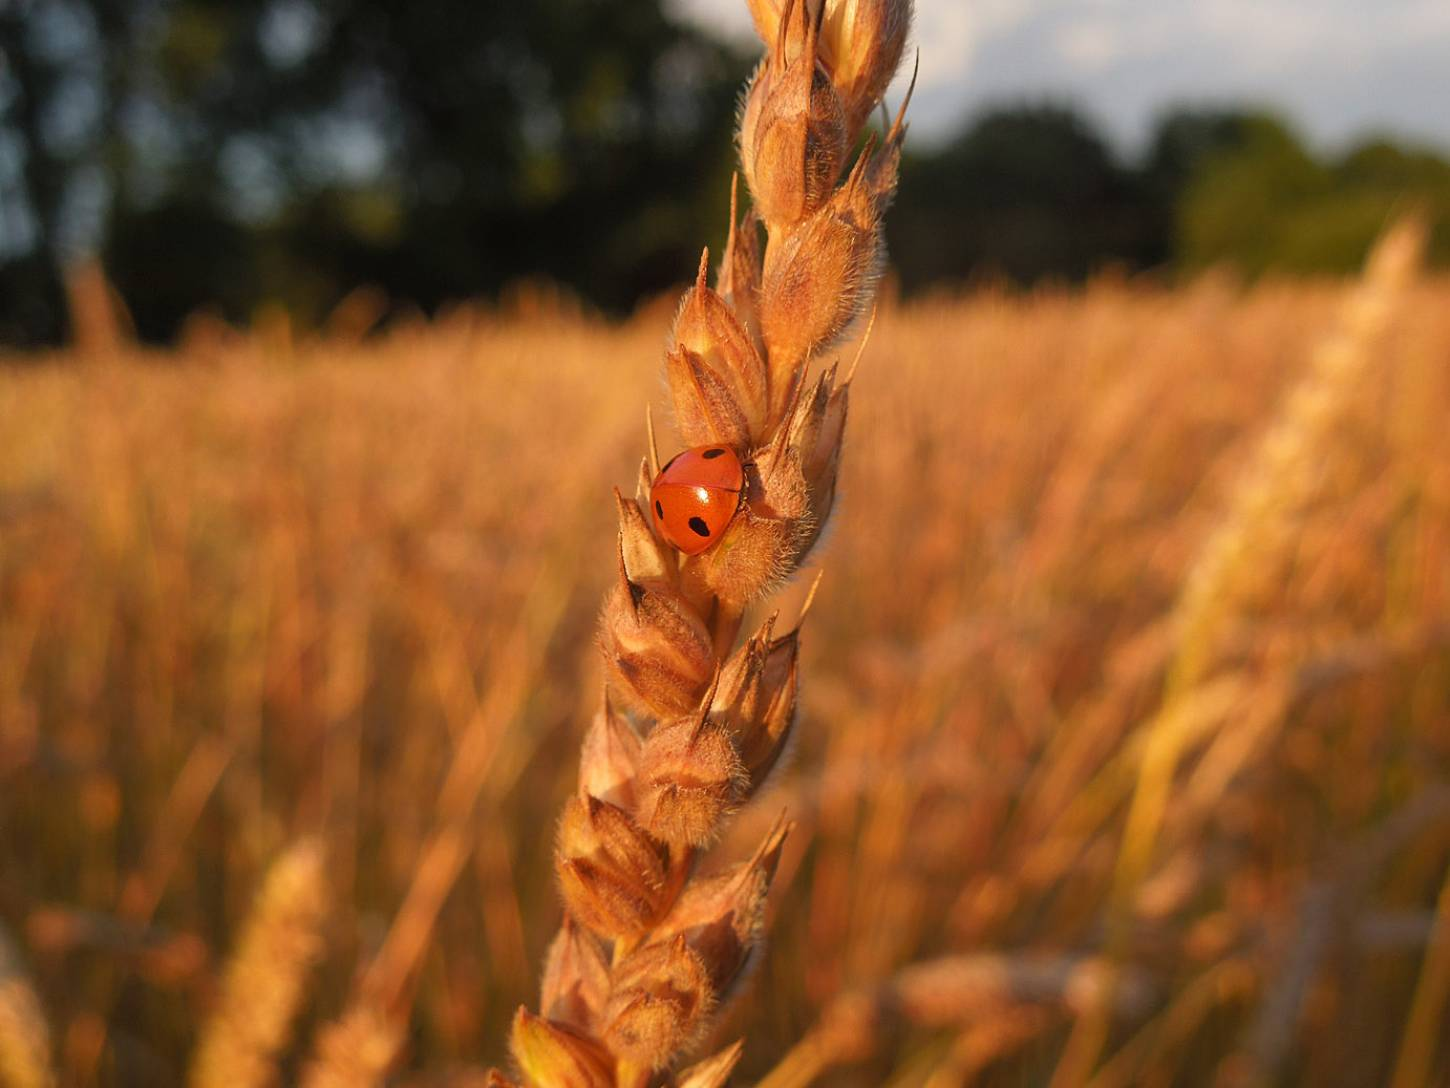 WoWo lodging review post storm 24/7/15 - ladybird on Orange Devon Blue Rough Chaff - 8:21pm&nbsp;25<sup>th</sup>&nbsp;Jul.&nbsp;'15